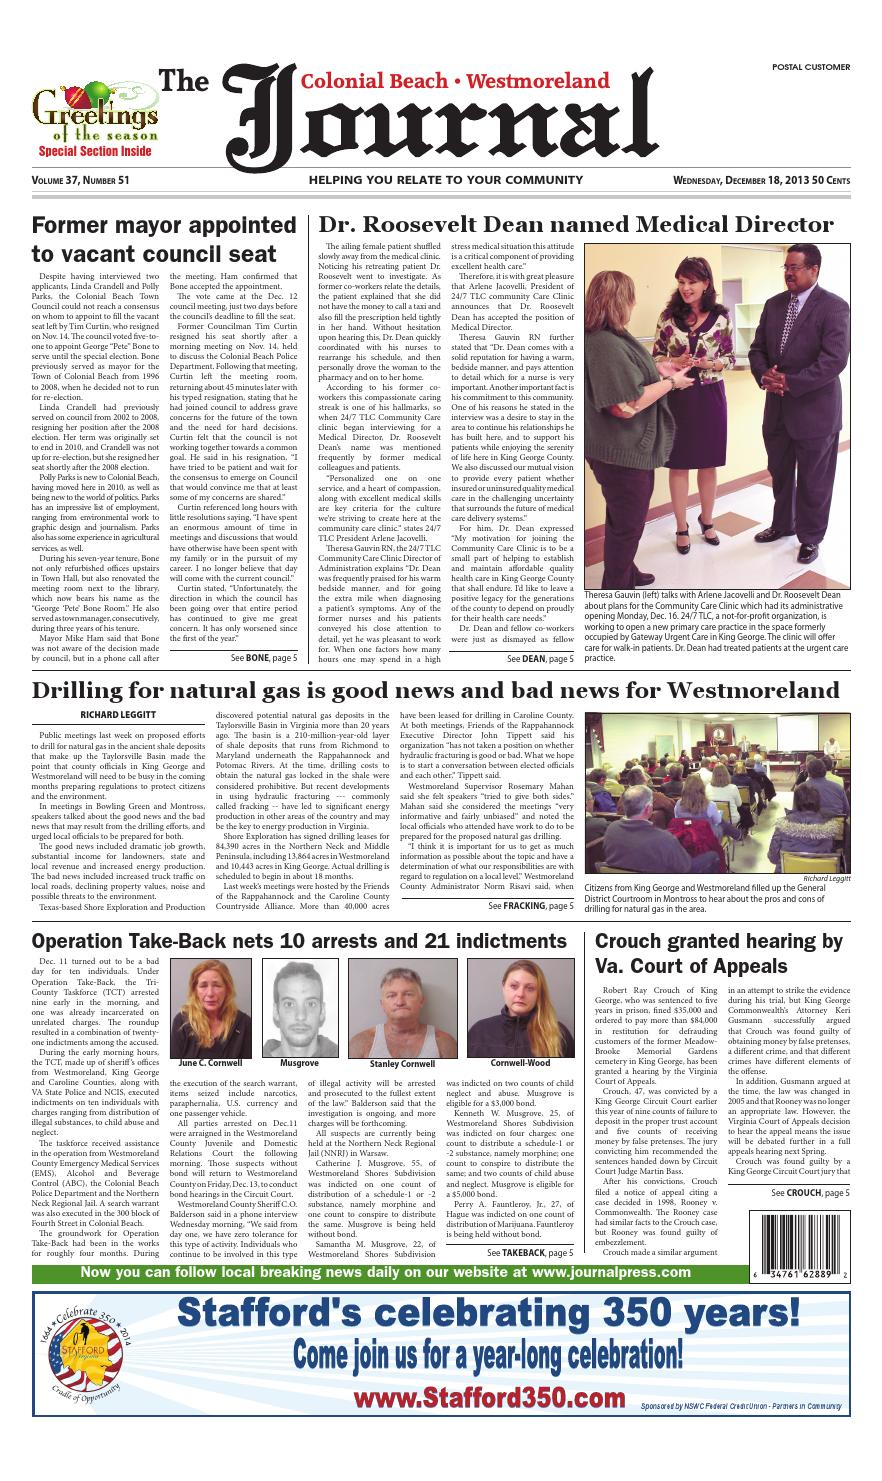 12-18-2013 Colonial Beach/Westmoreland County Va Journal by